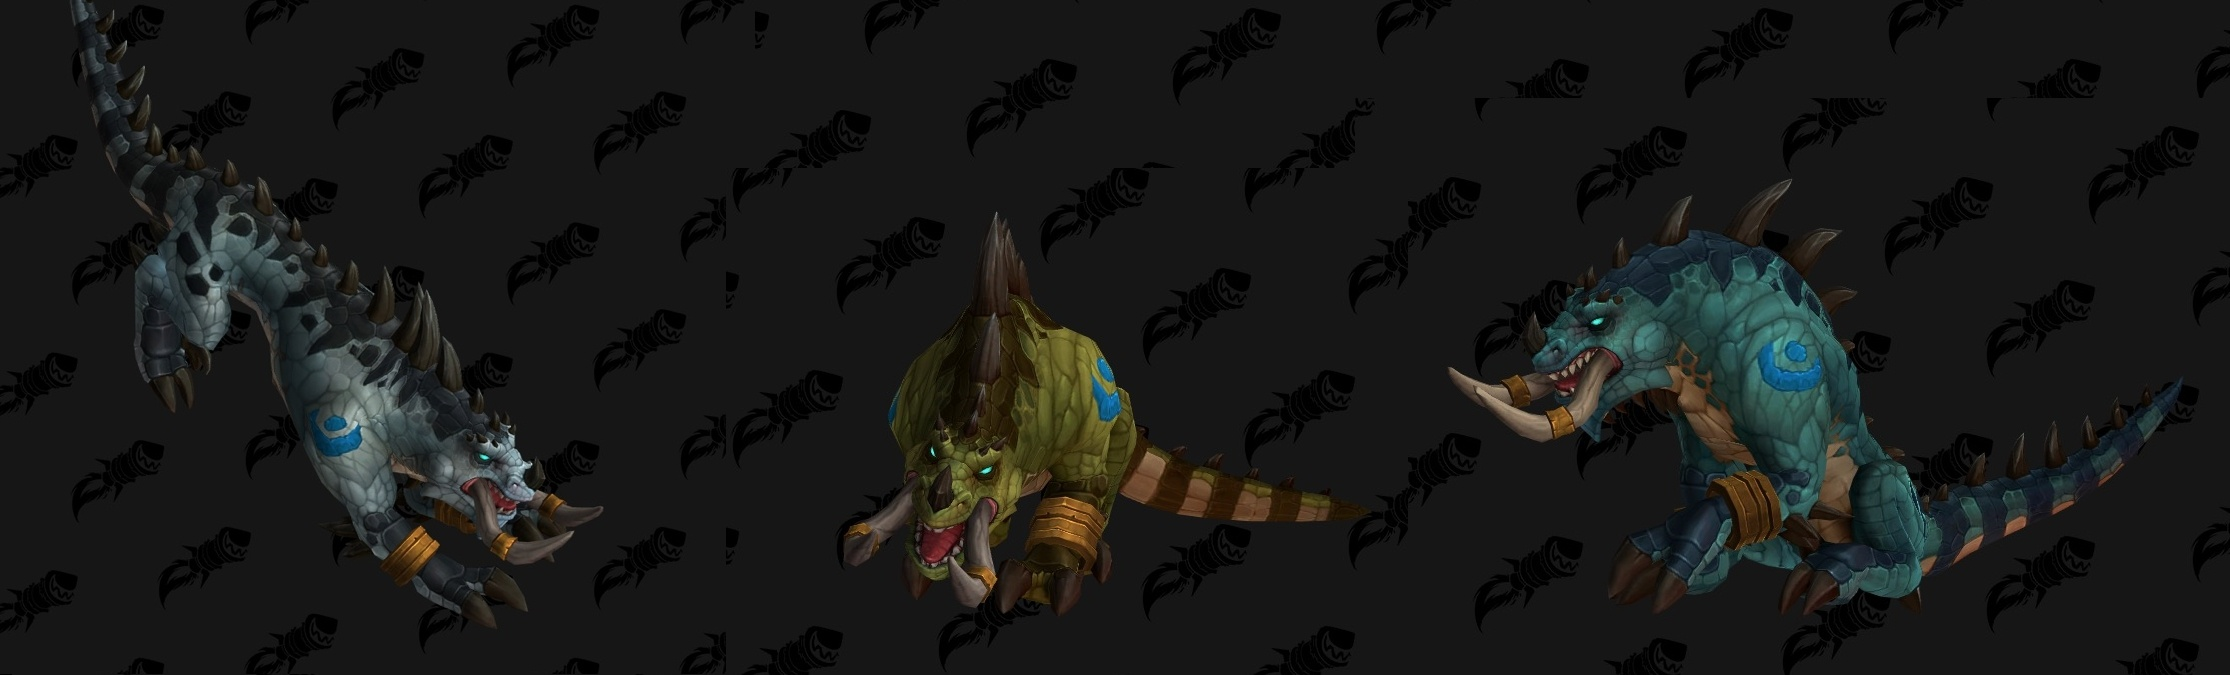 Zandalari Troll Druid Cat Form - Now With Animations In Model Viewer